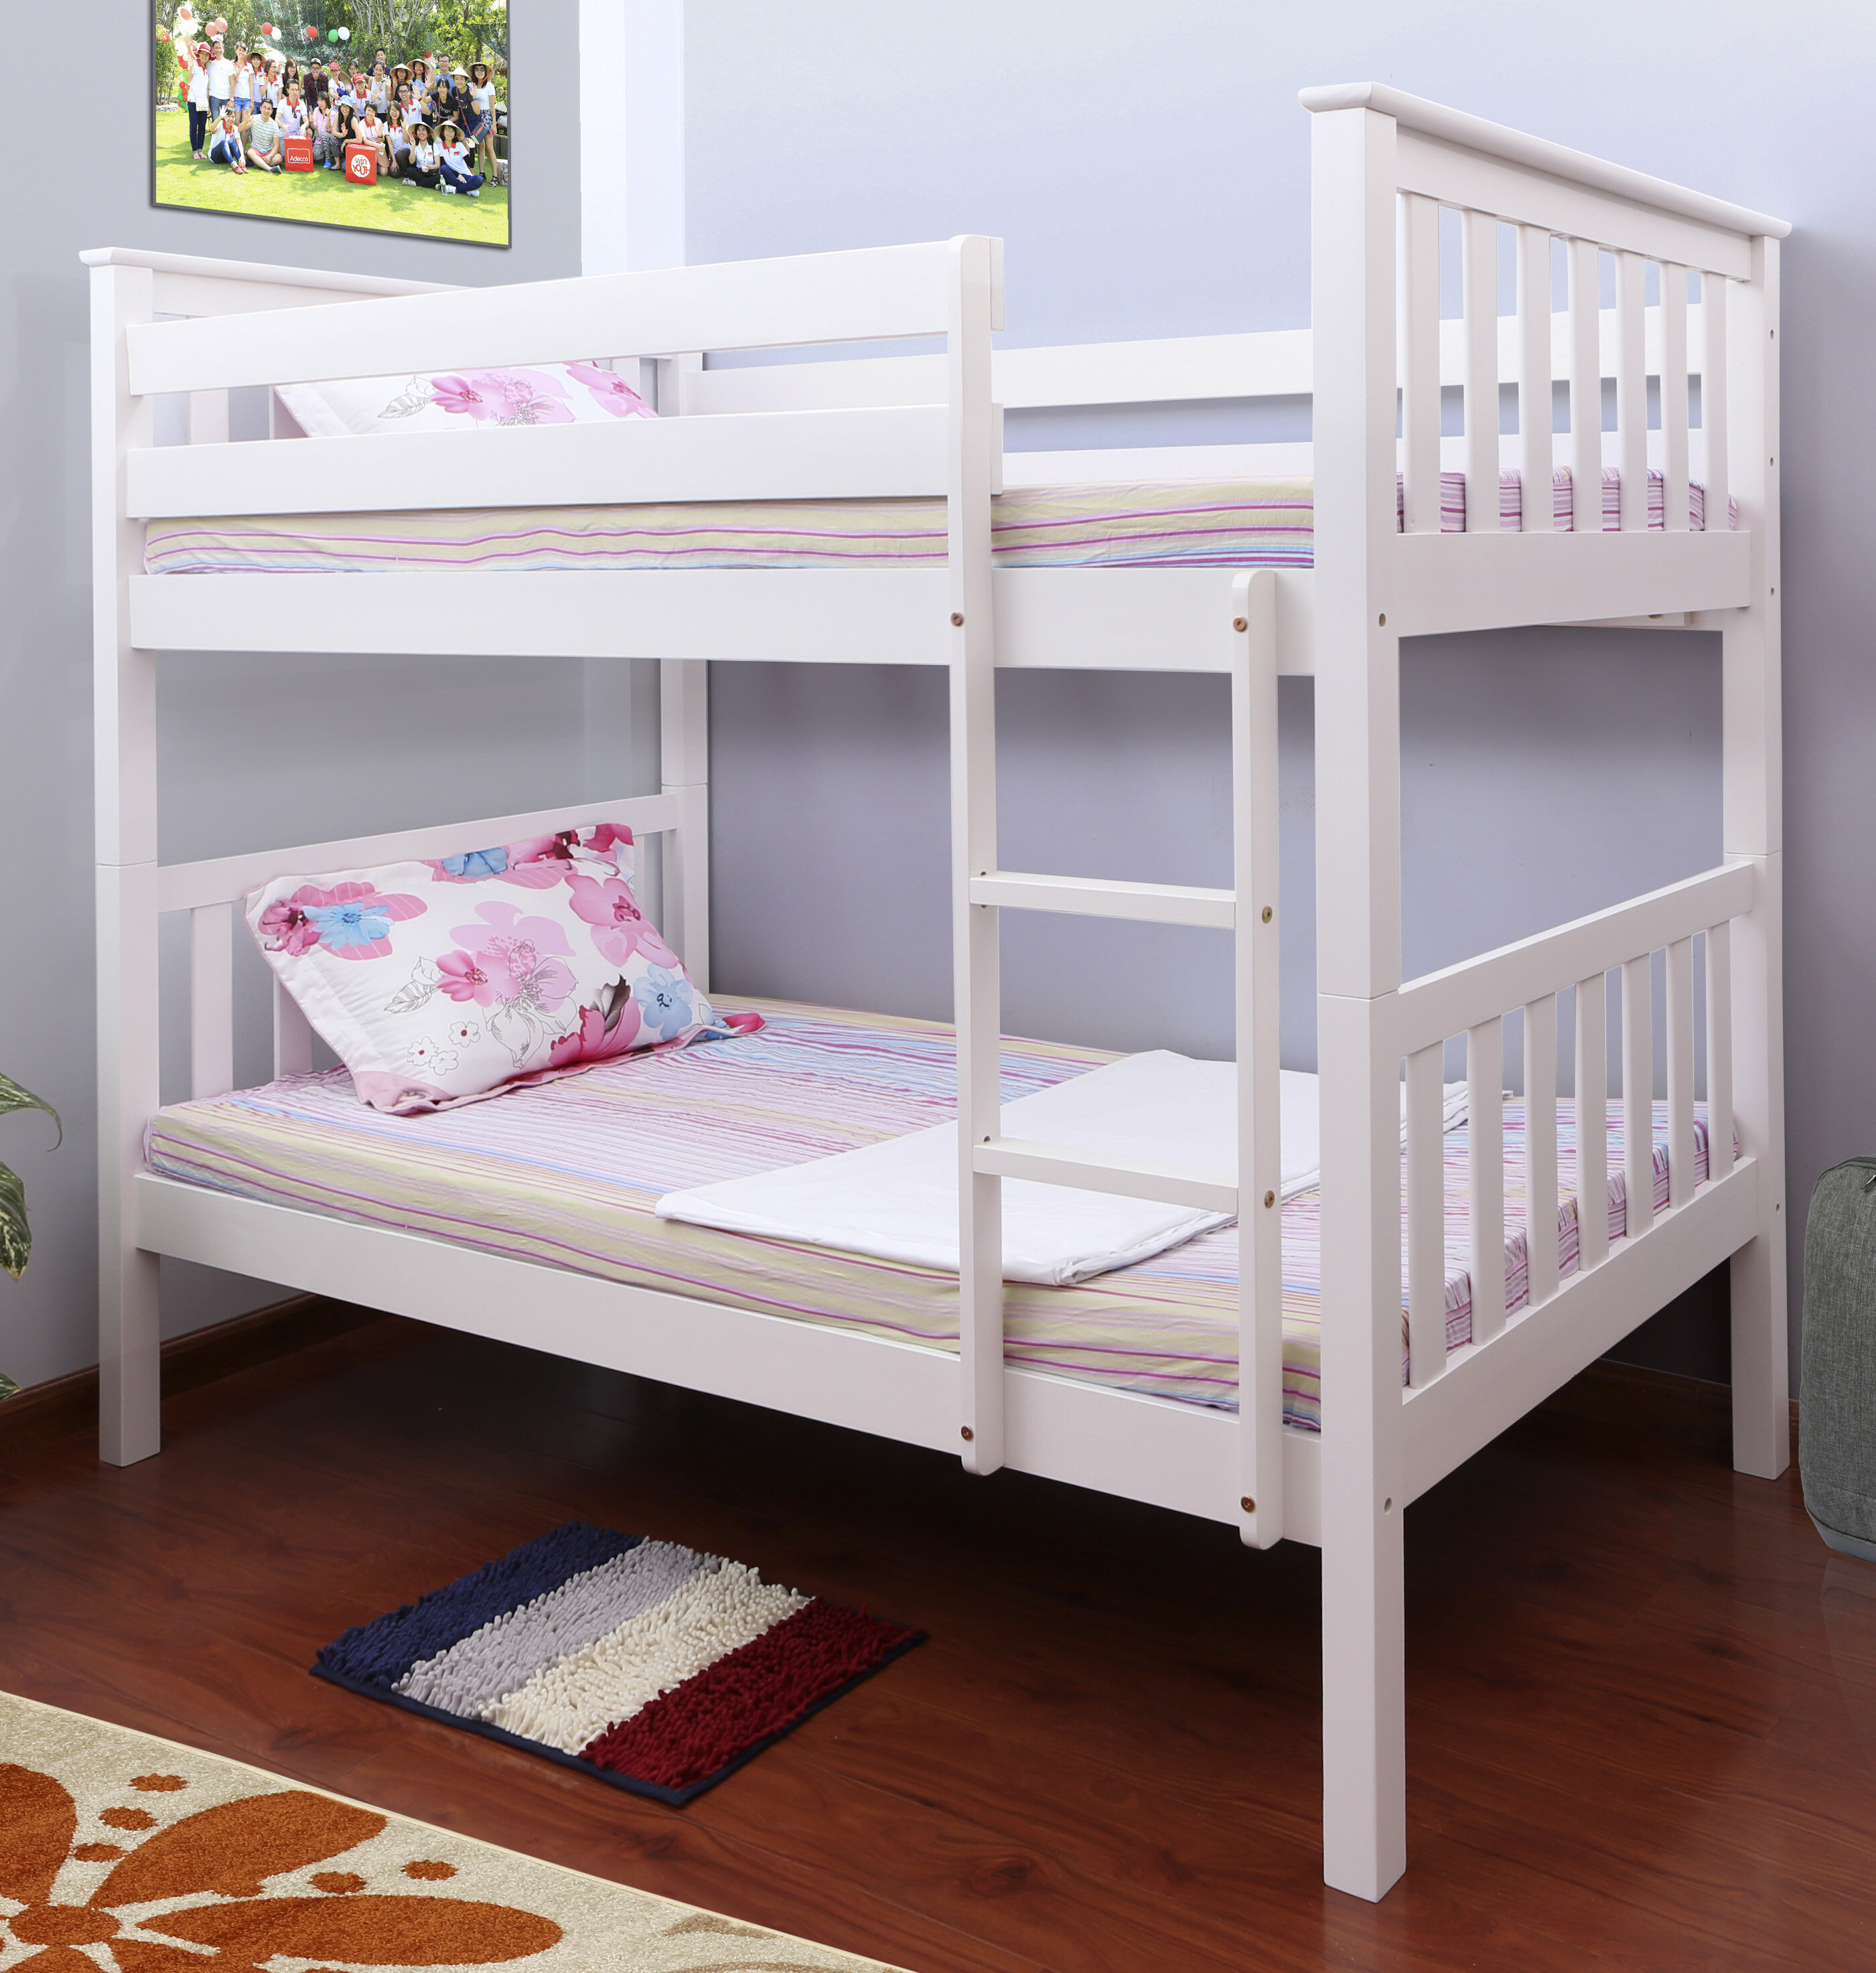 size bed how bunk desk a build loft and to frame diy ceiling wicked beds queen with design low double top